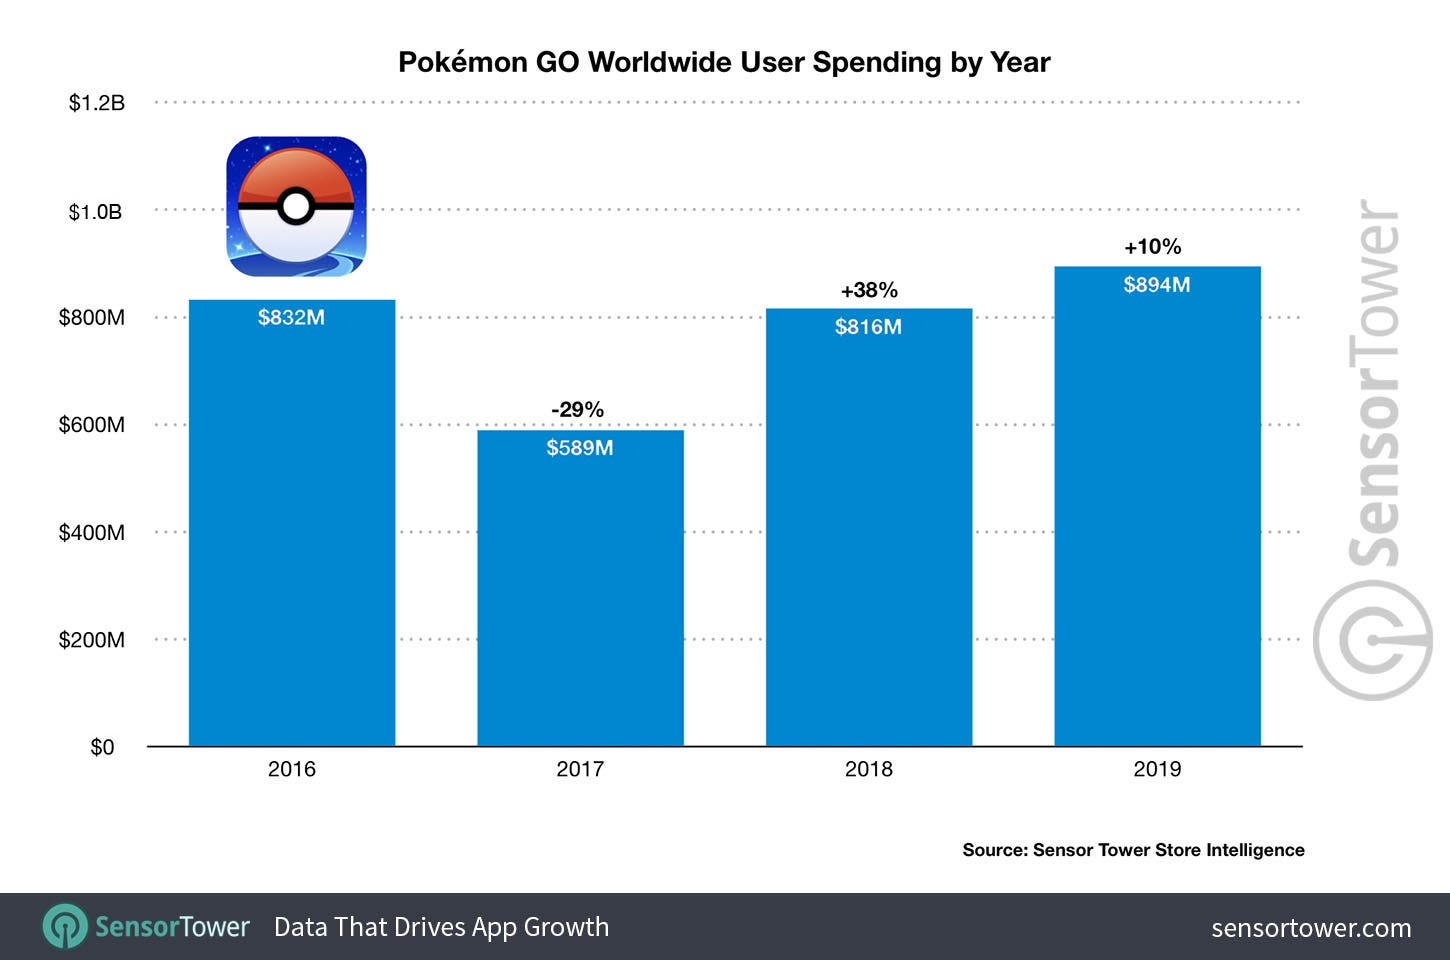 Pokémon GO Worldwide User Spending by Year